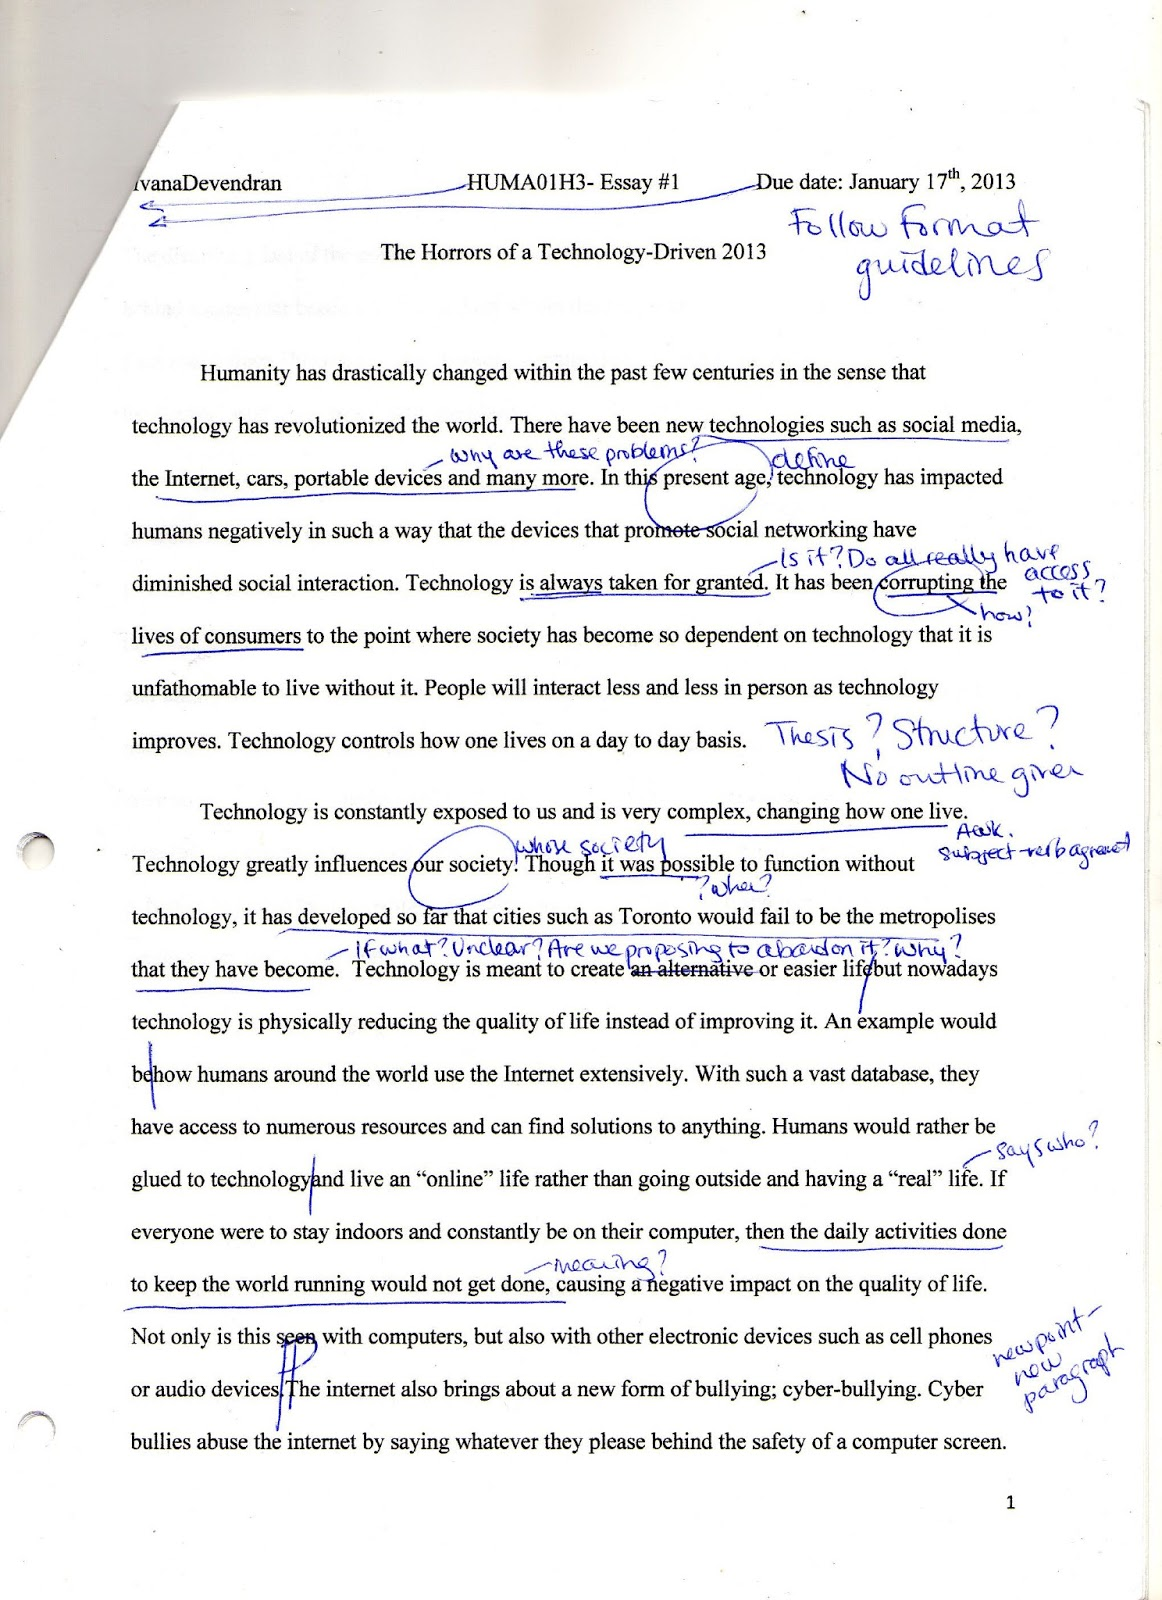 011 Img008 Essay Example How Technology Has Changed Our Awesome Lives Pdf On For The Worst Full